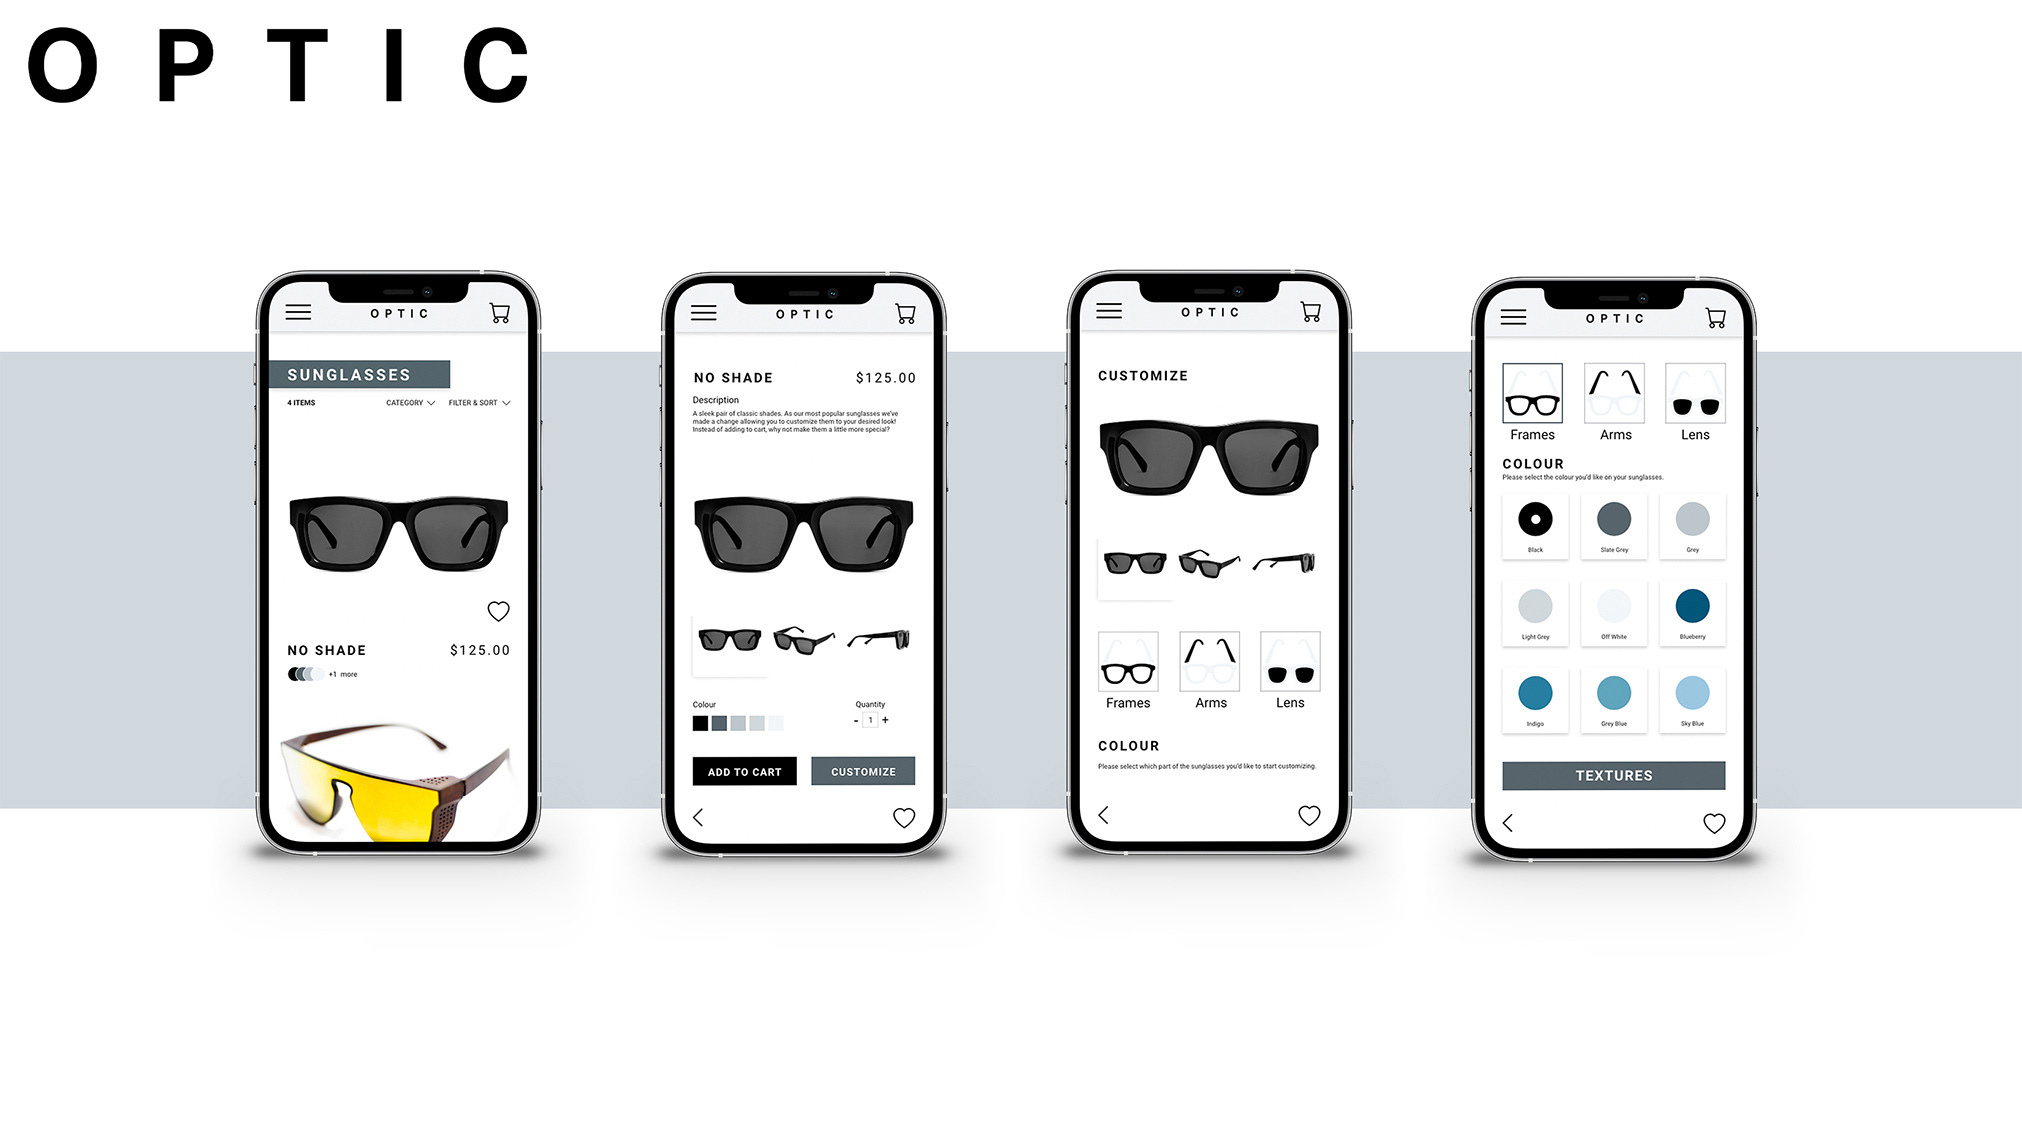 A fictional app designed for creating customized sunglasses.